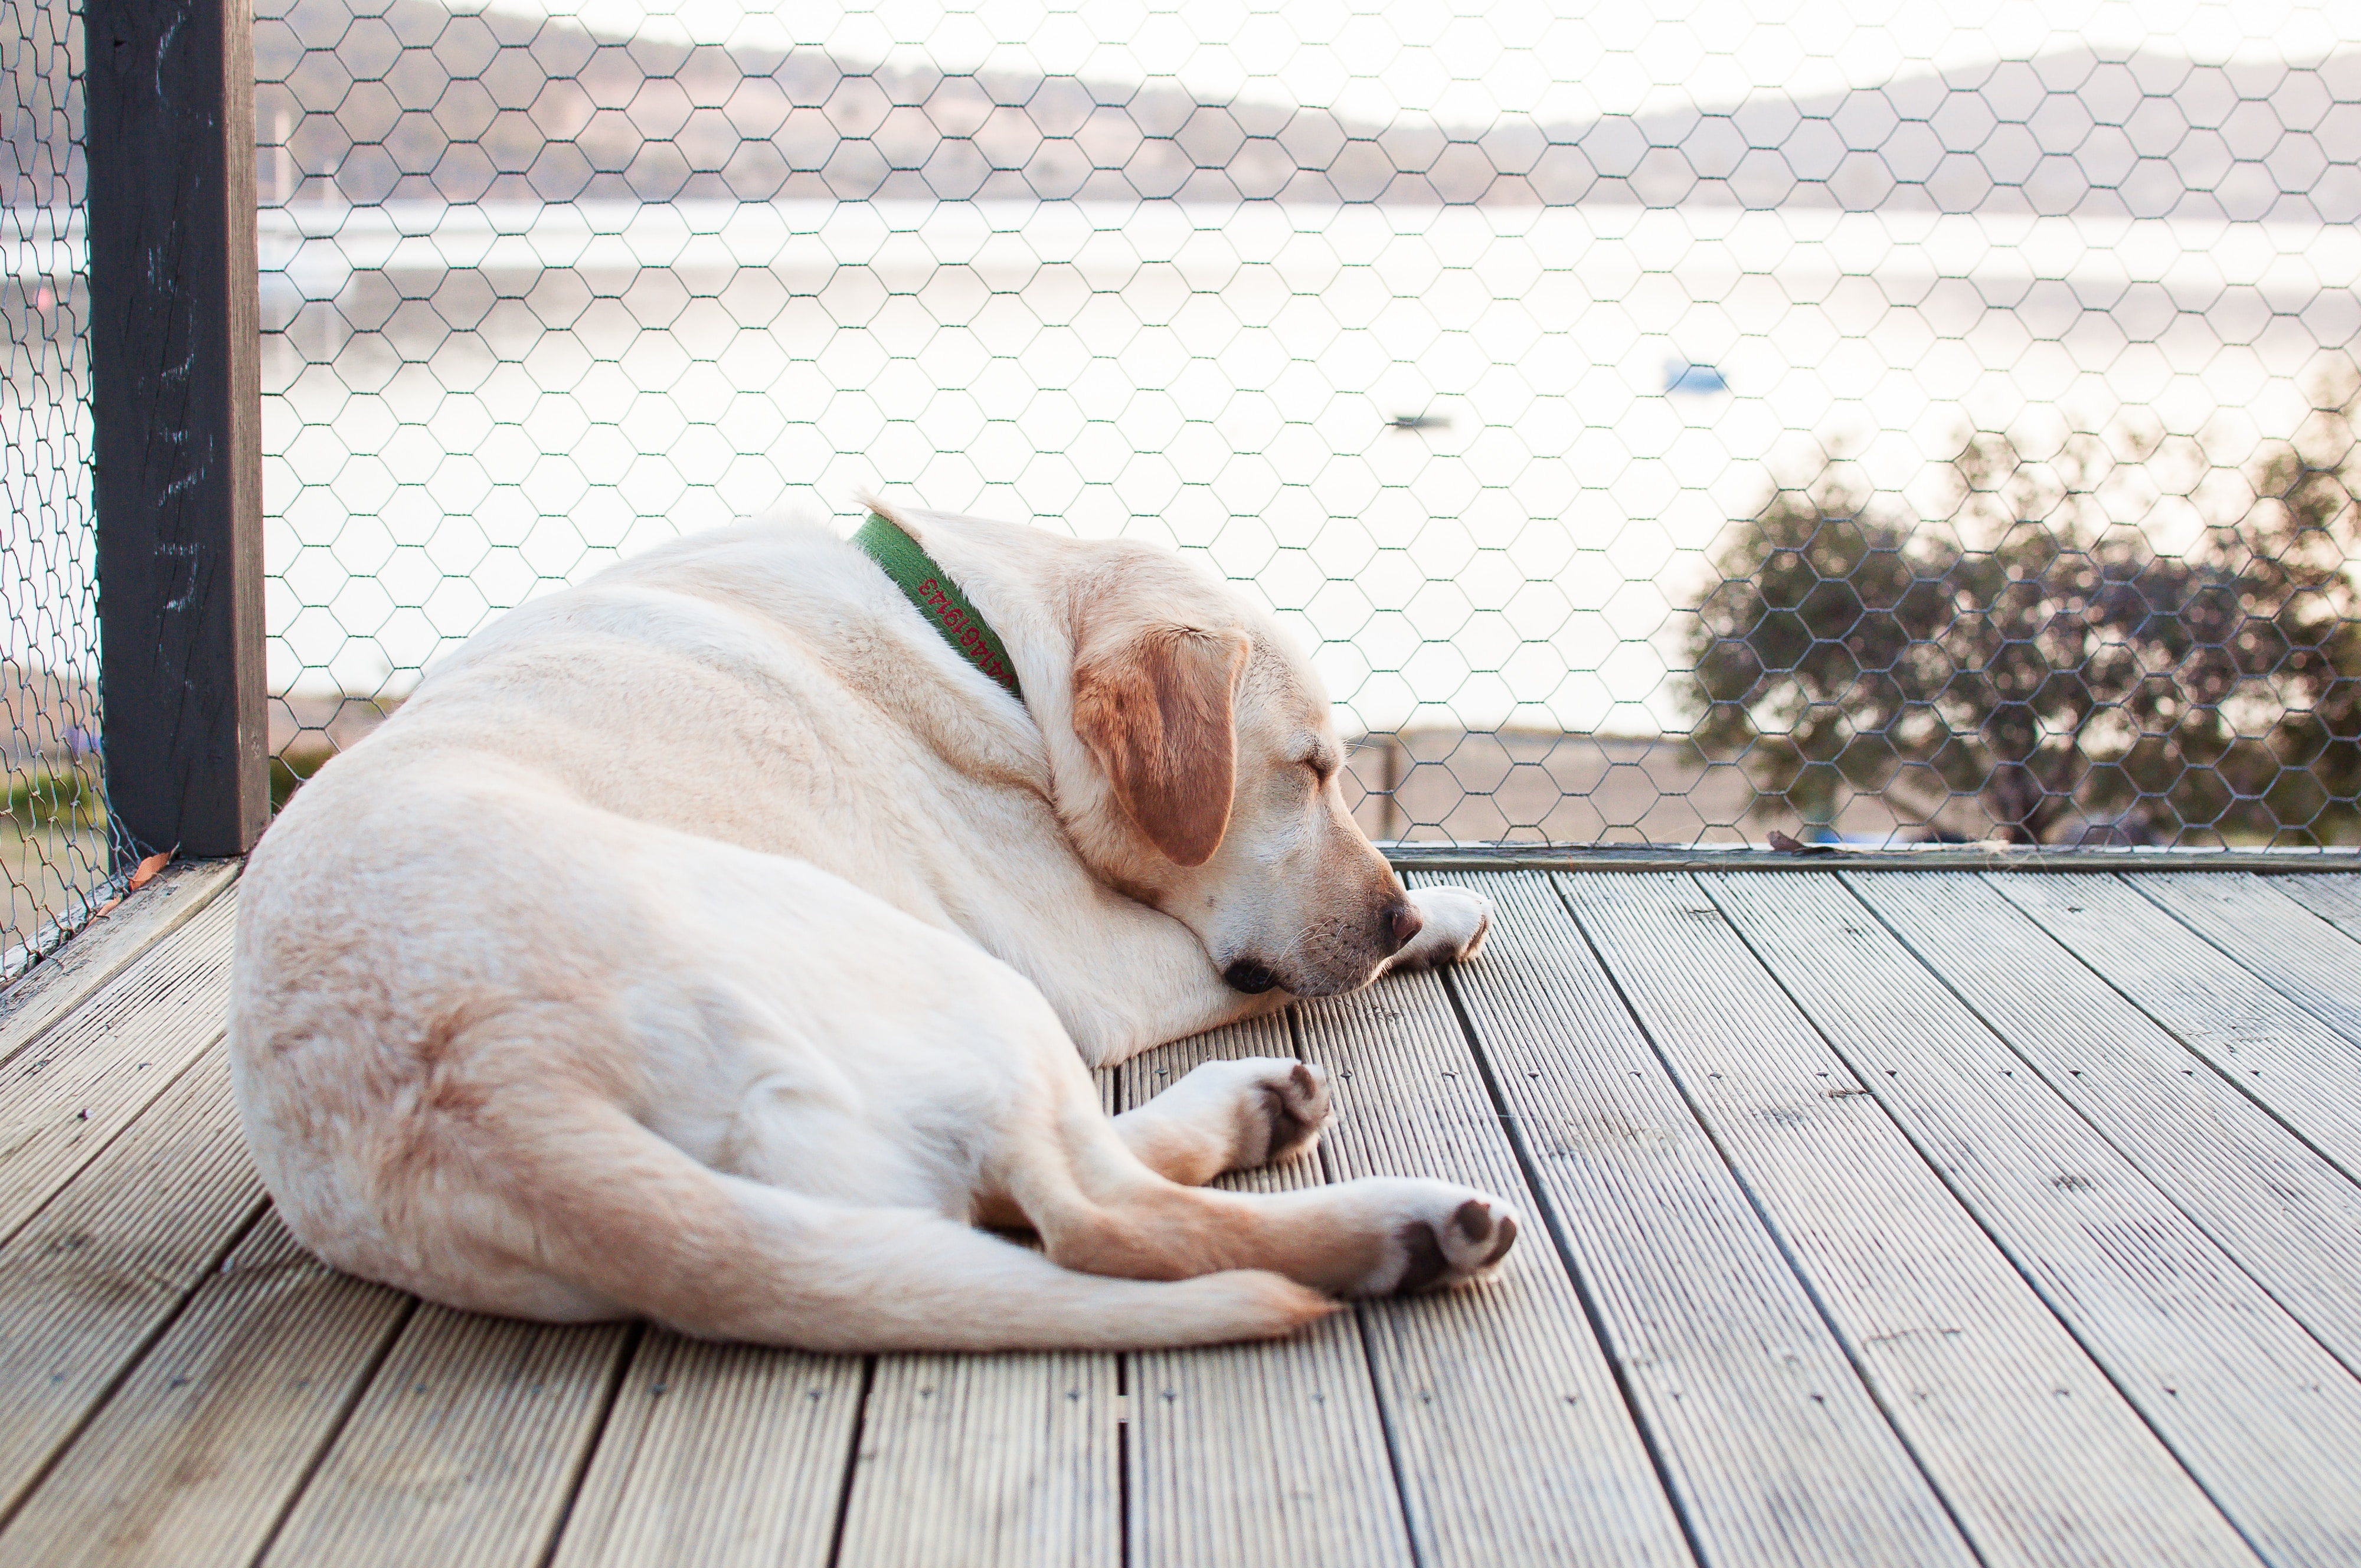 White shorthaired dog sleeping on wooden deck